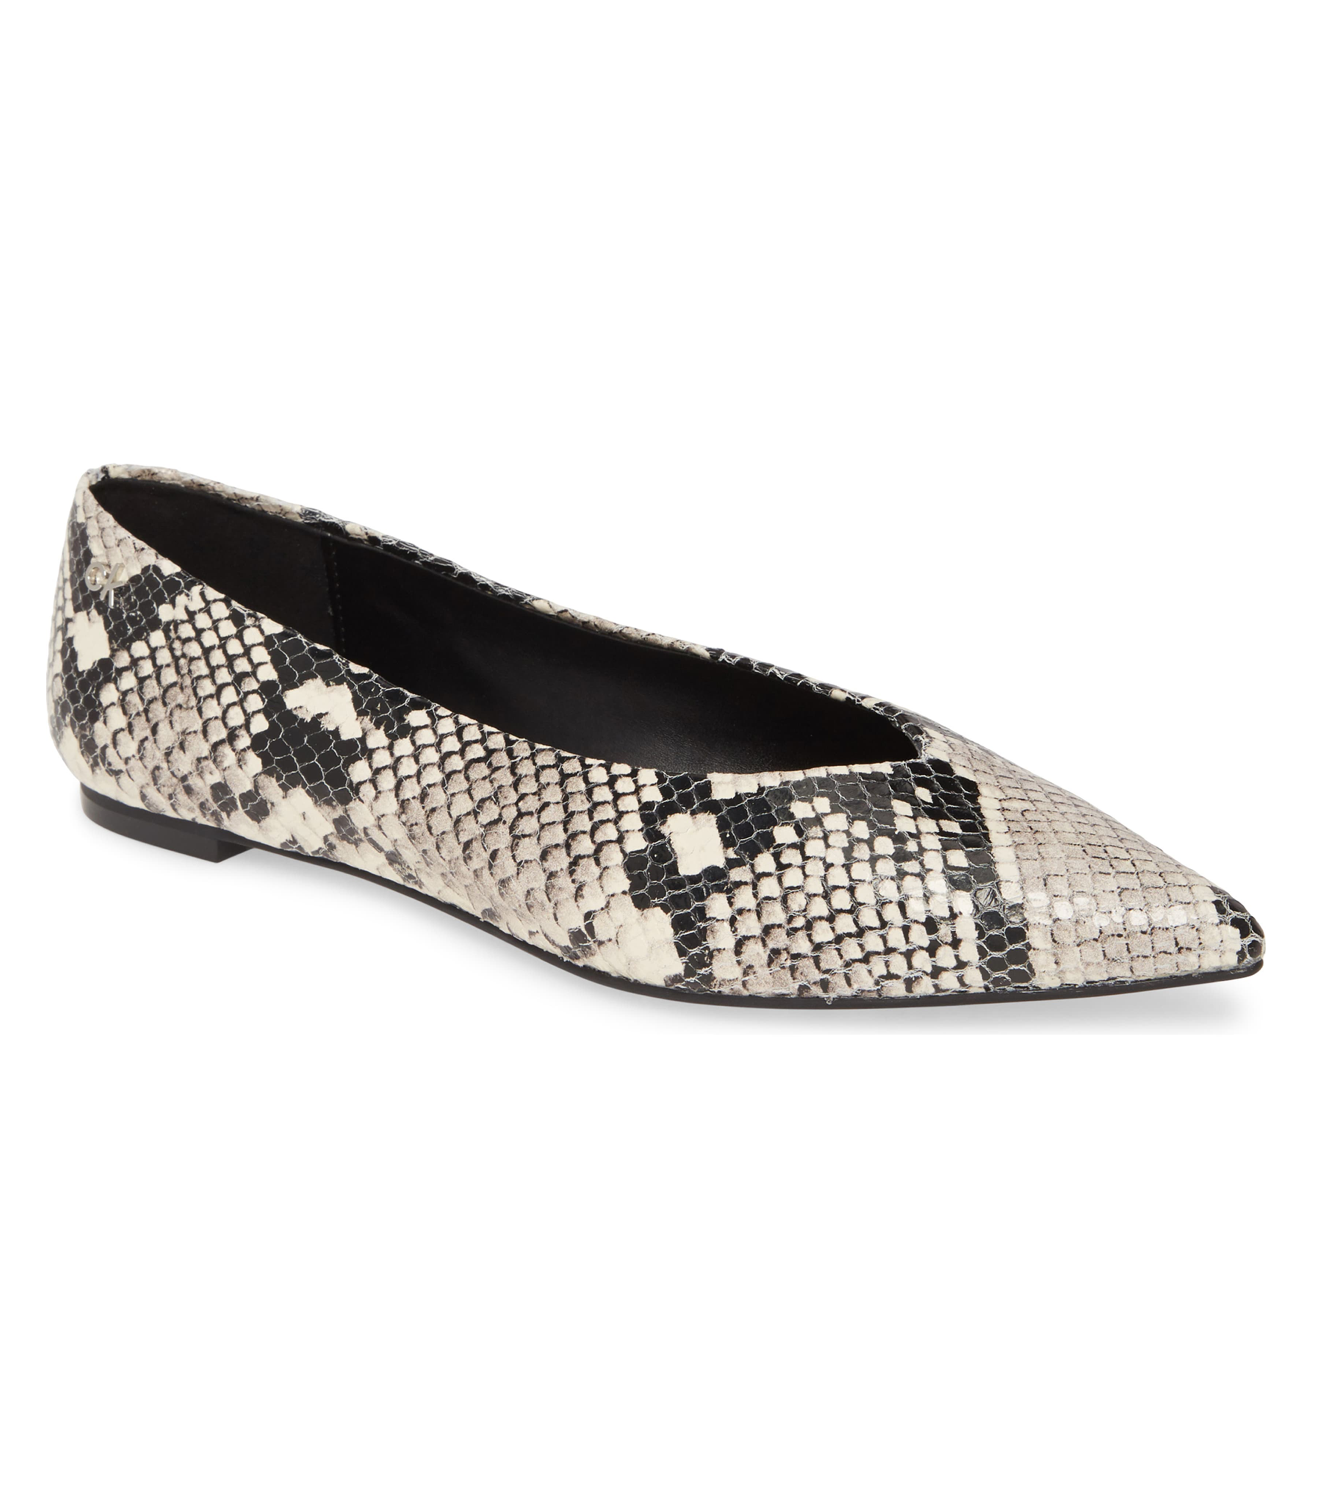 Snake Embossed Leather Flats